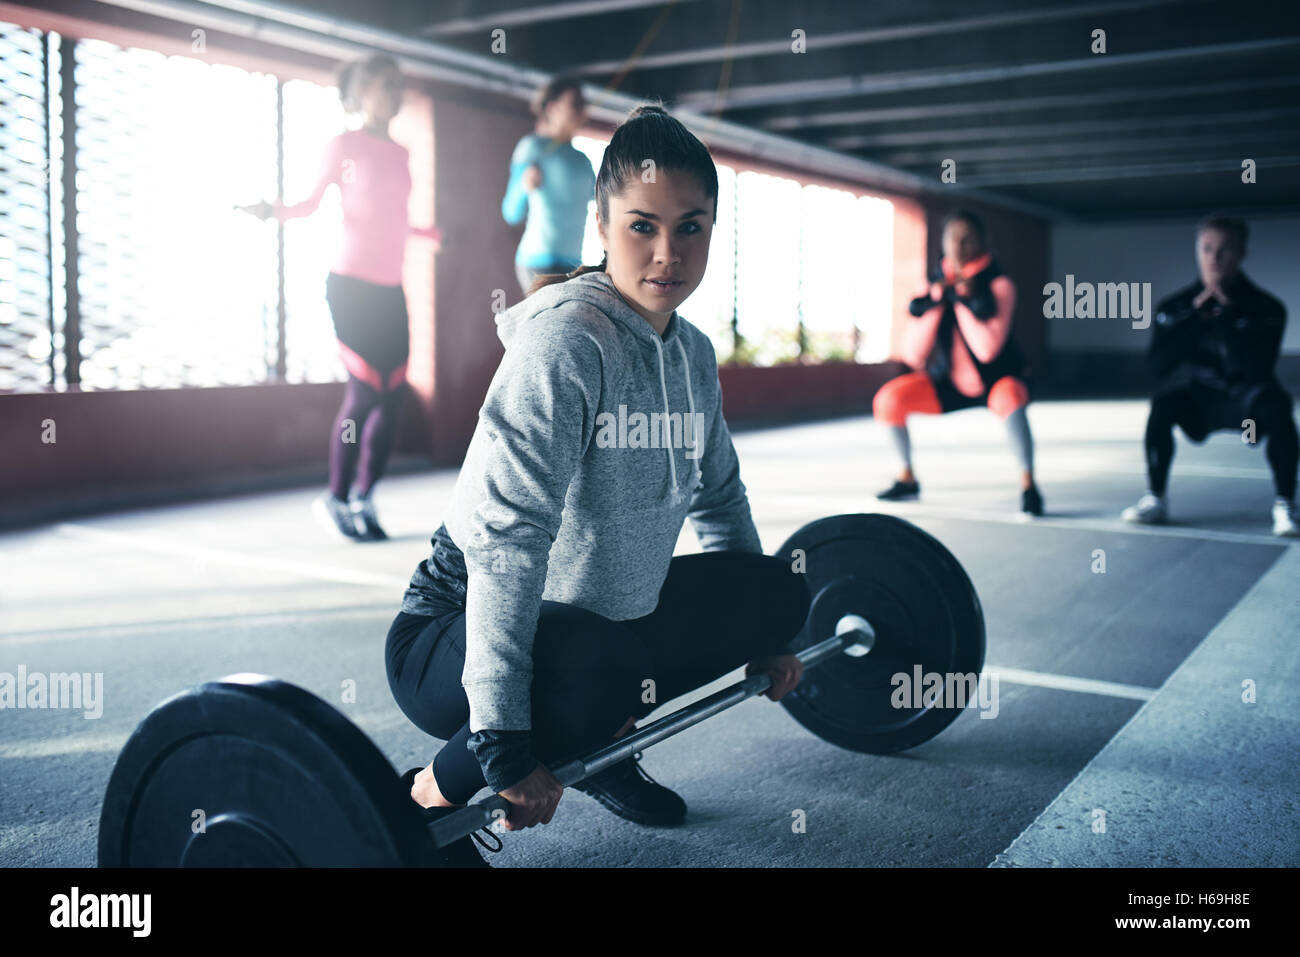 Fit healthy woman exercising, sitting at floor looking at camera, getting ready to lift weight - Stock Image